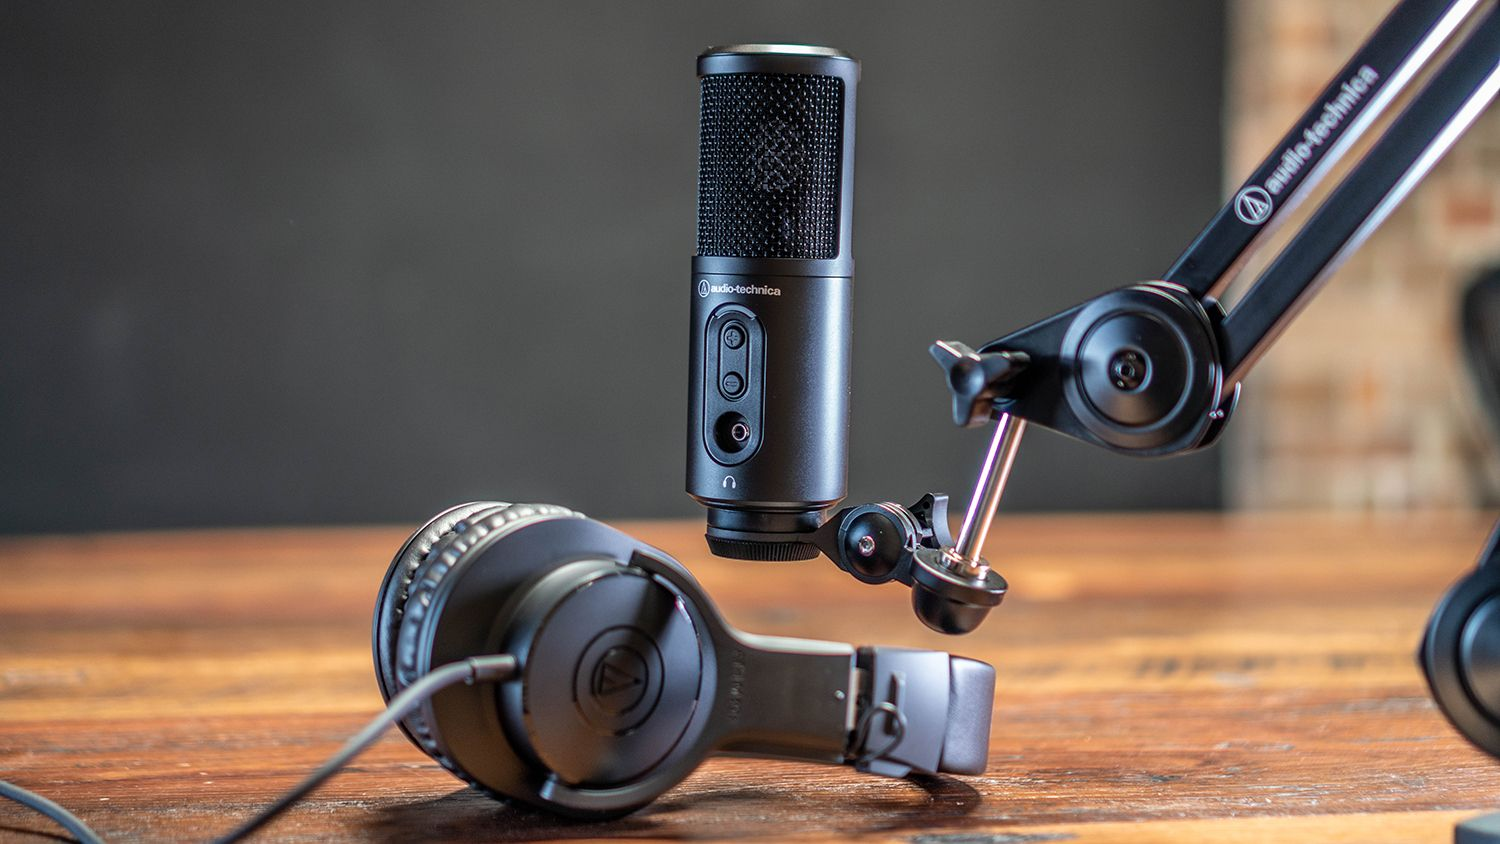 AudioTechnica's new Content Creator Pack lets you record